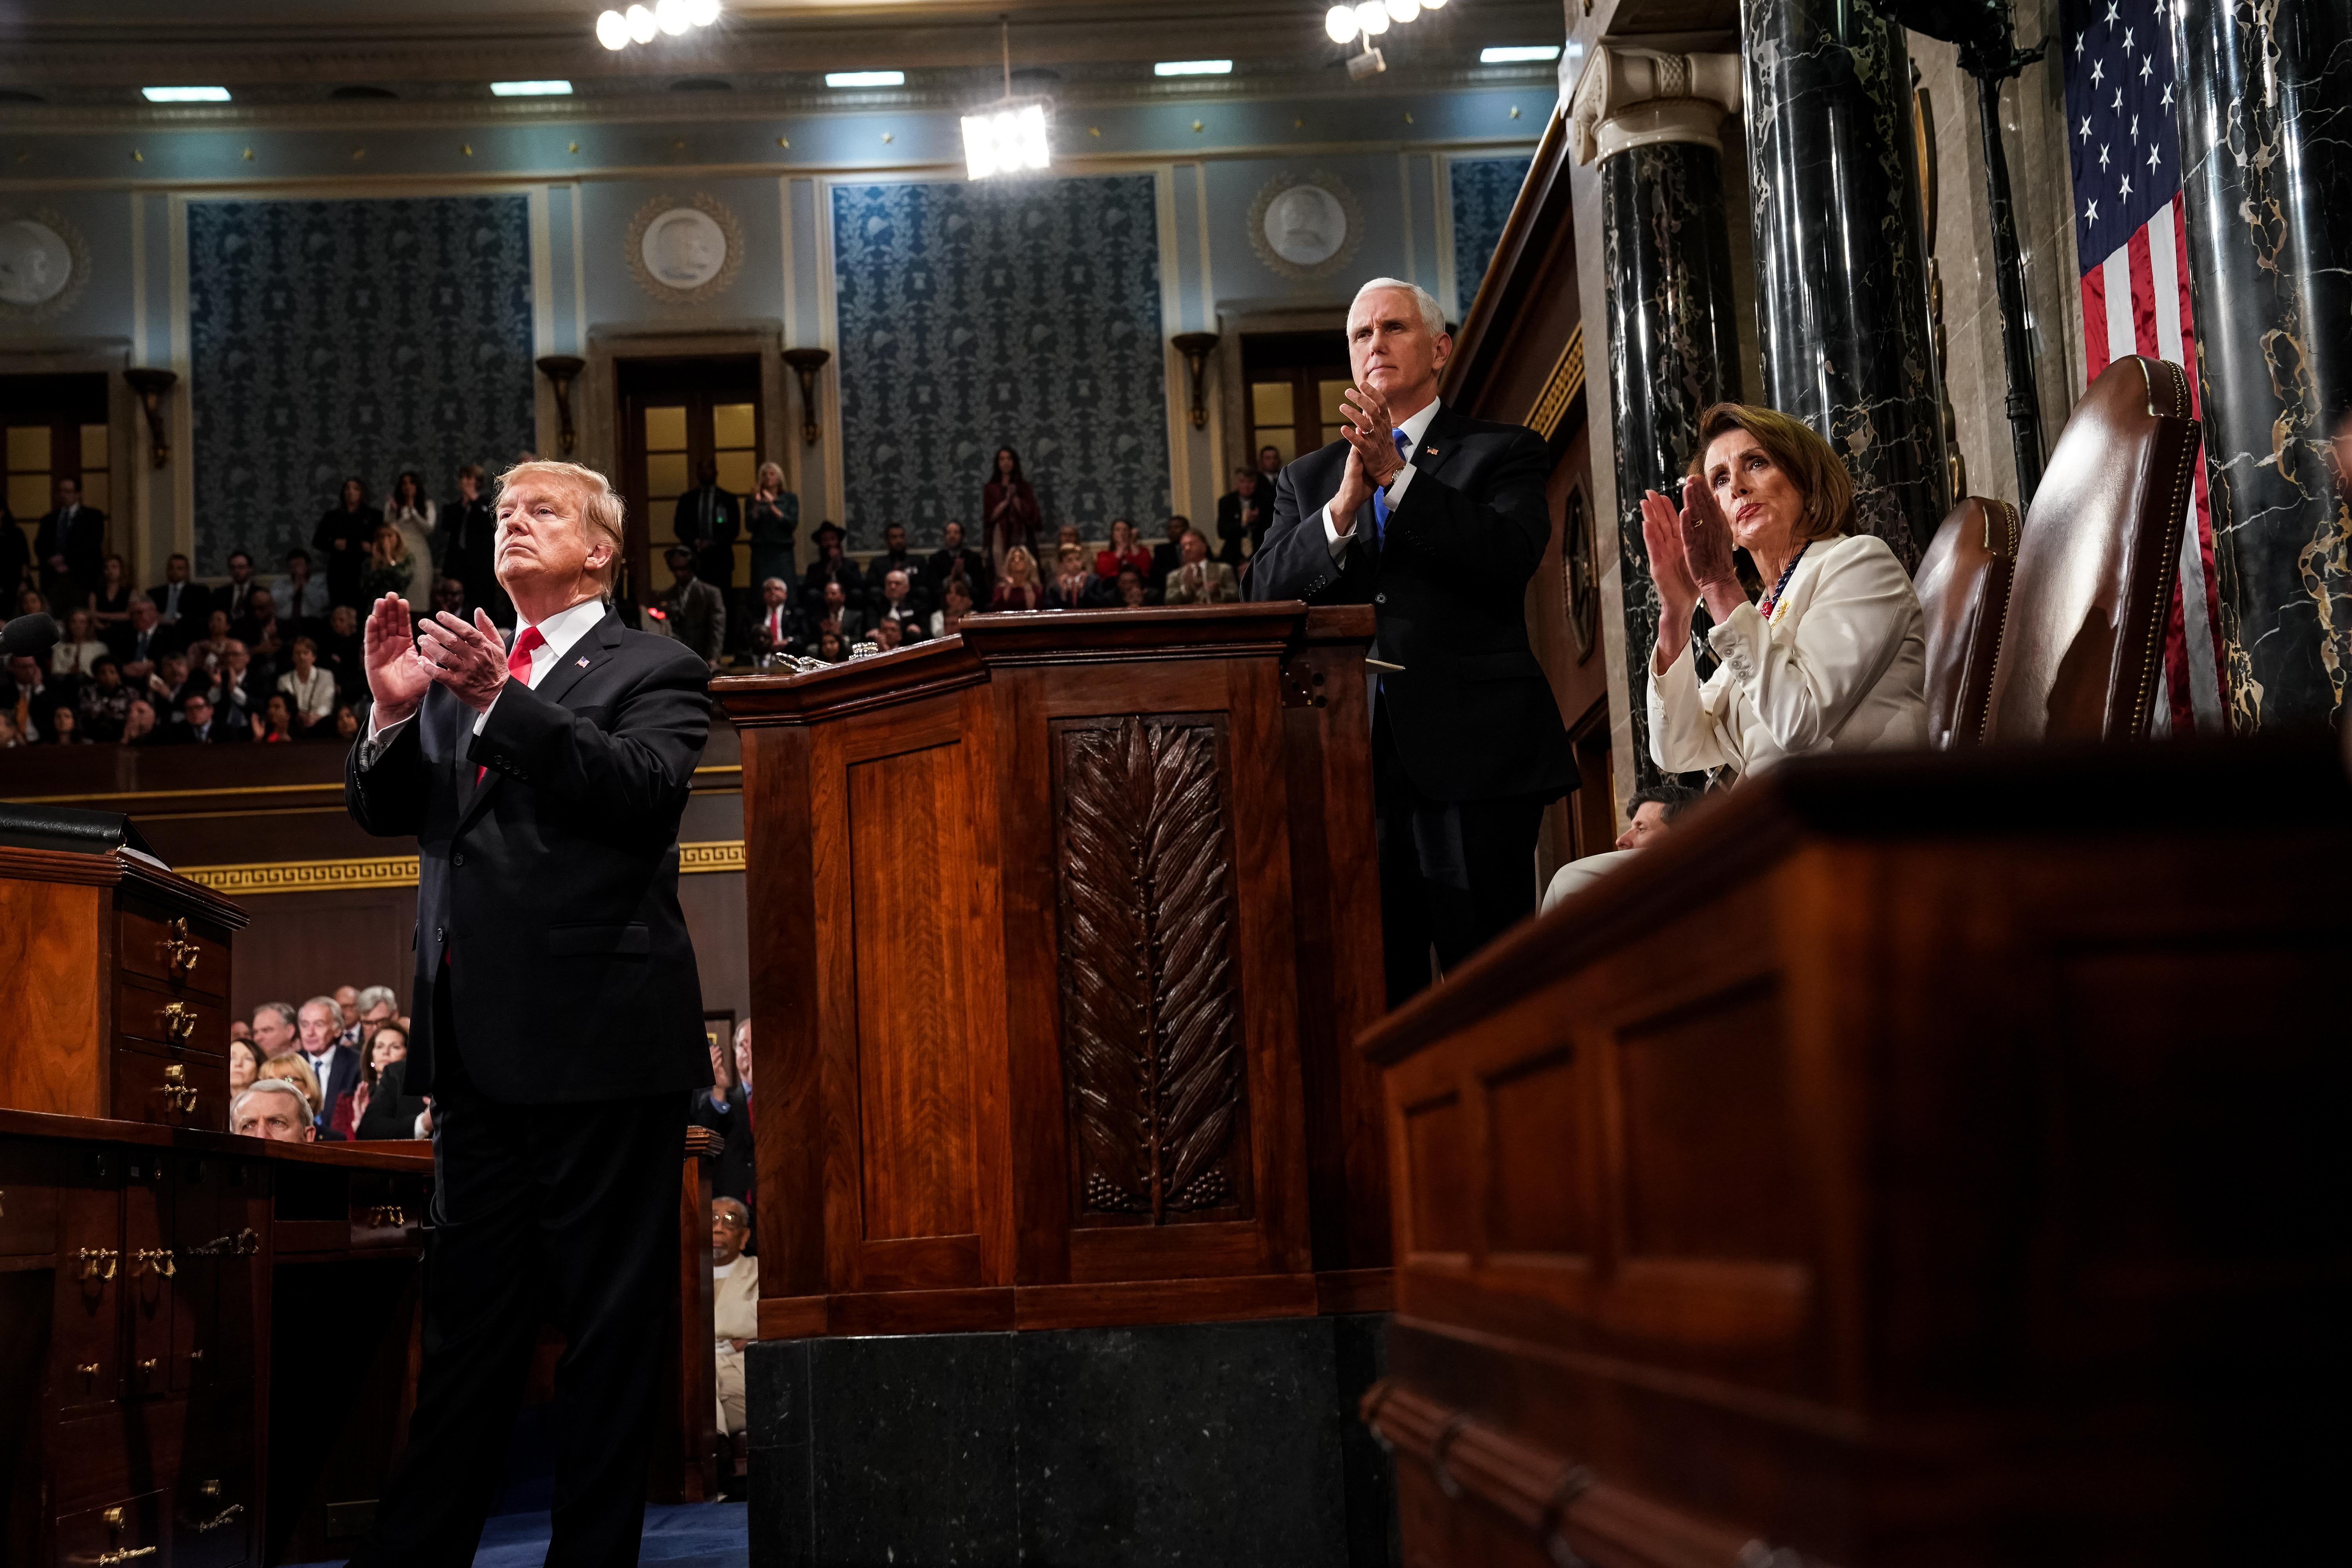 U.S. President Donald Trump, House Speaker Nancy Pelosi, and Vice President Mike Pence applaud during the State of the Union address on Tuesday in Washington.